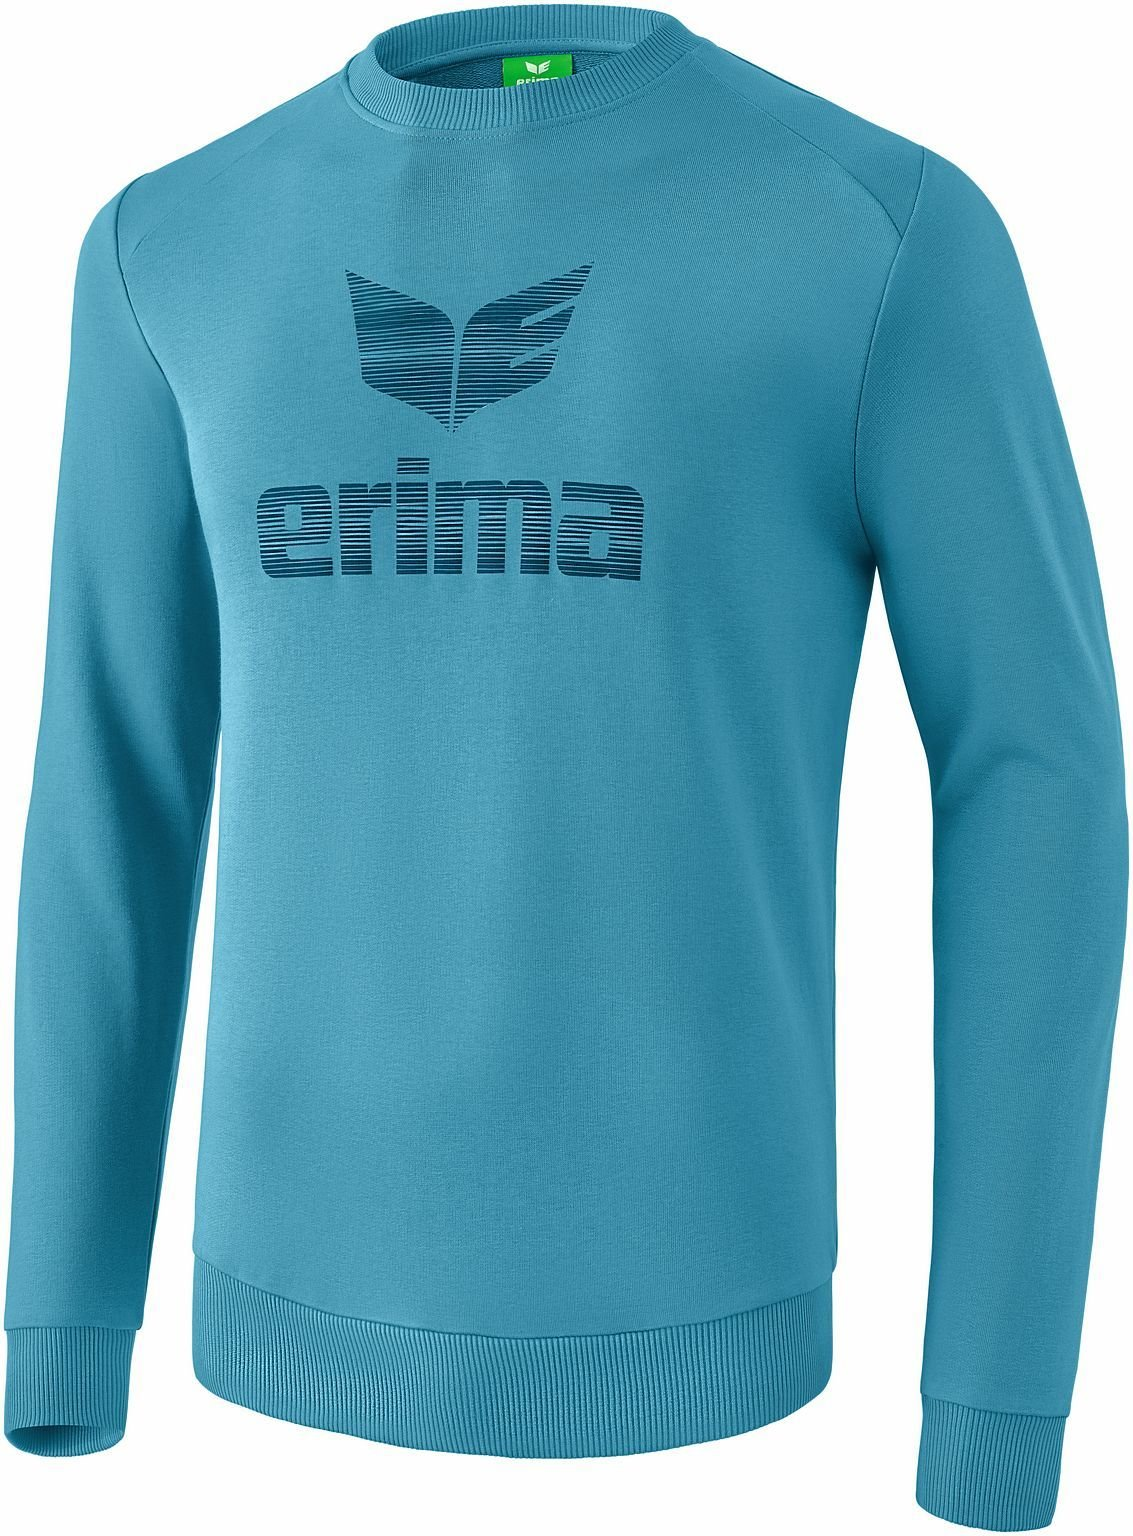 Essential SweatShirt Herren Kinder ak2071813